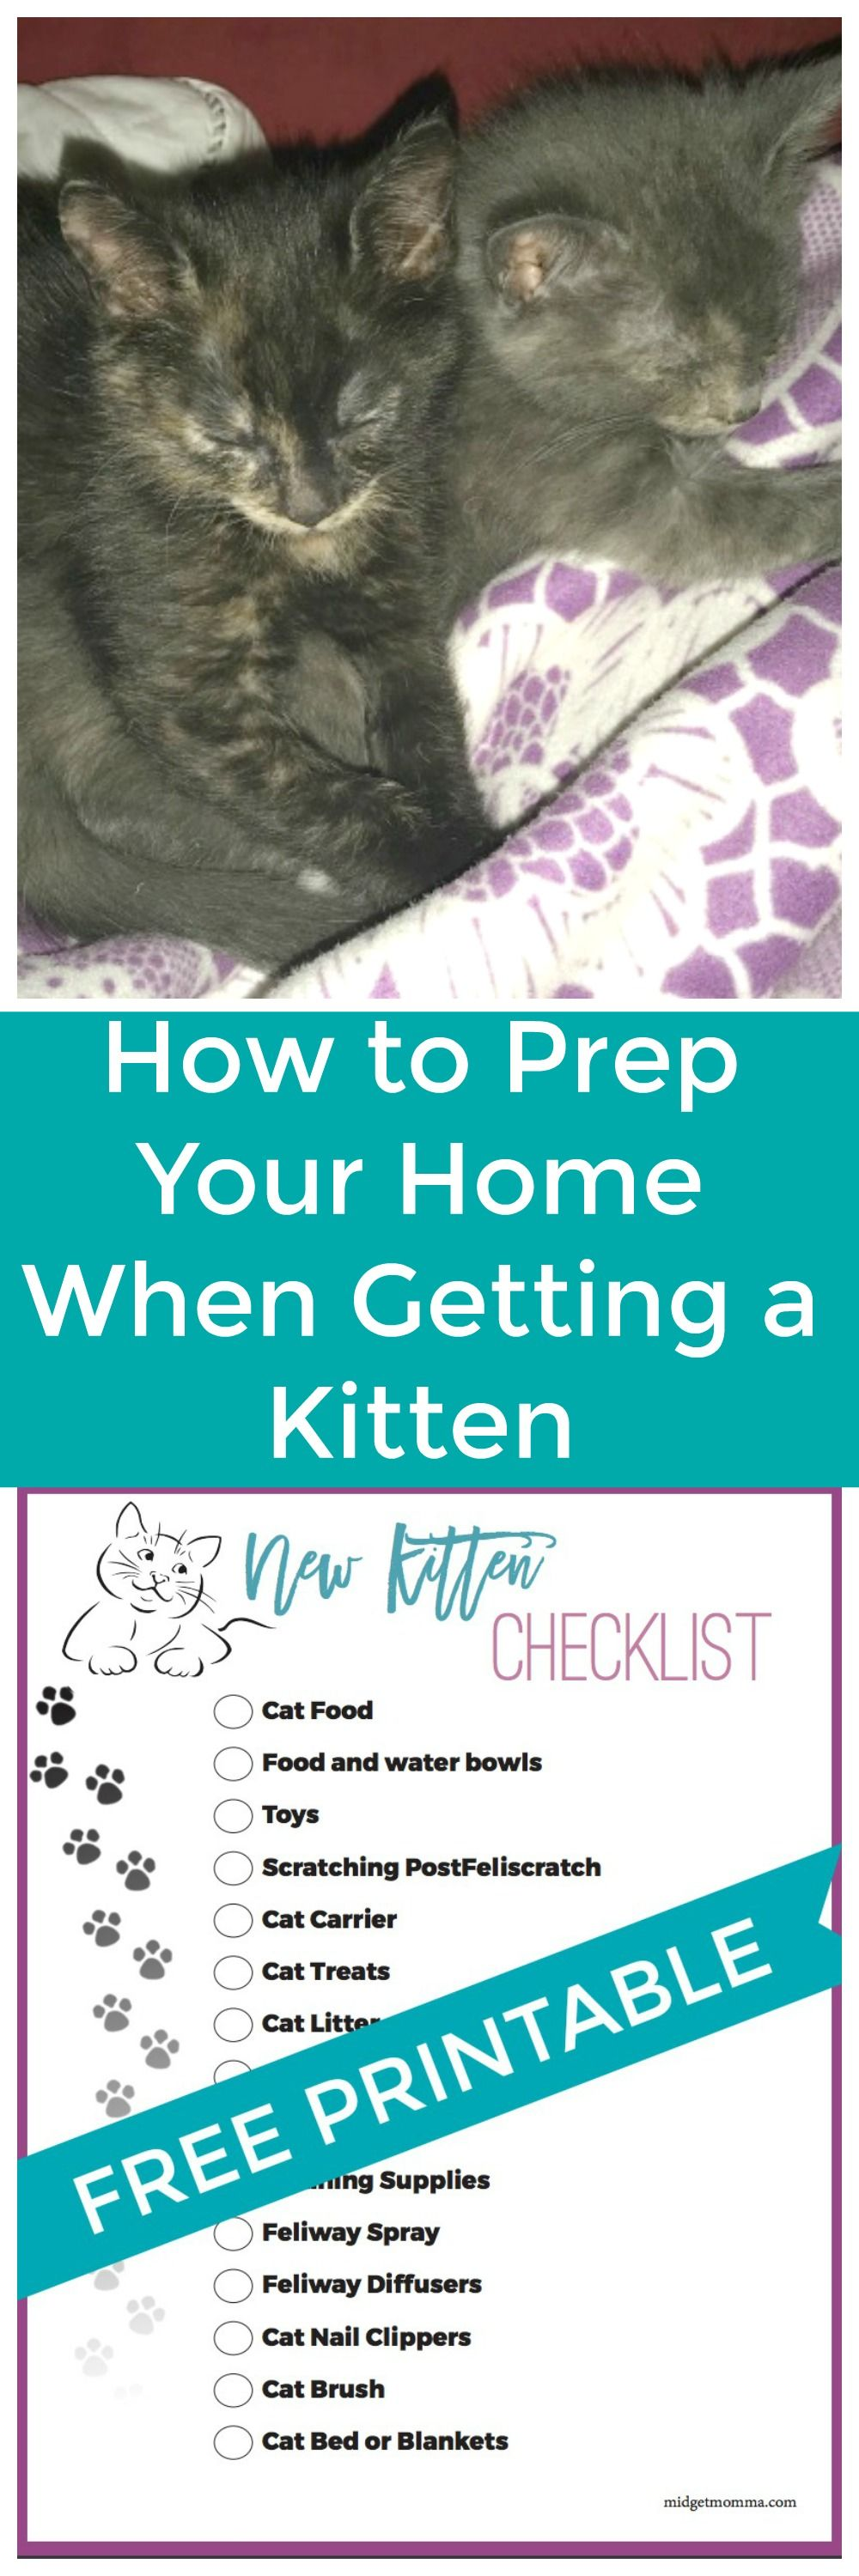 Check List For Getting A New Cat Printable Check List For New Kittens With Everything You Need To Get For A New Kitte Getting A Kitten Kitten Checklist Kitten